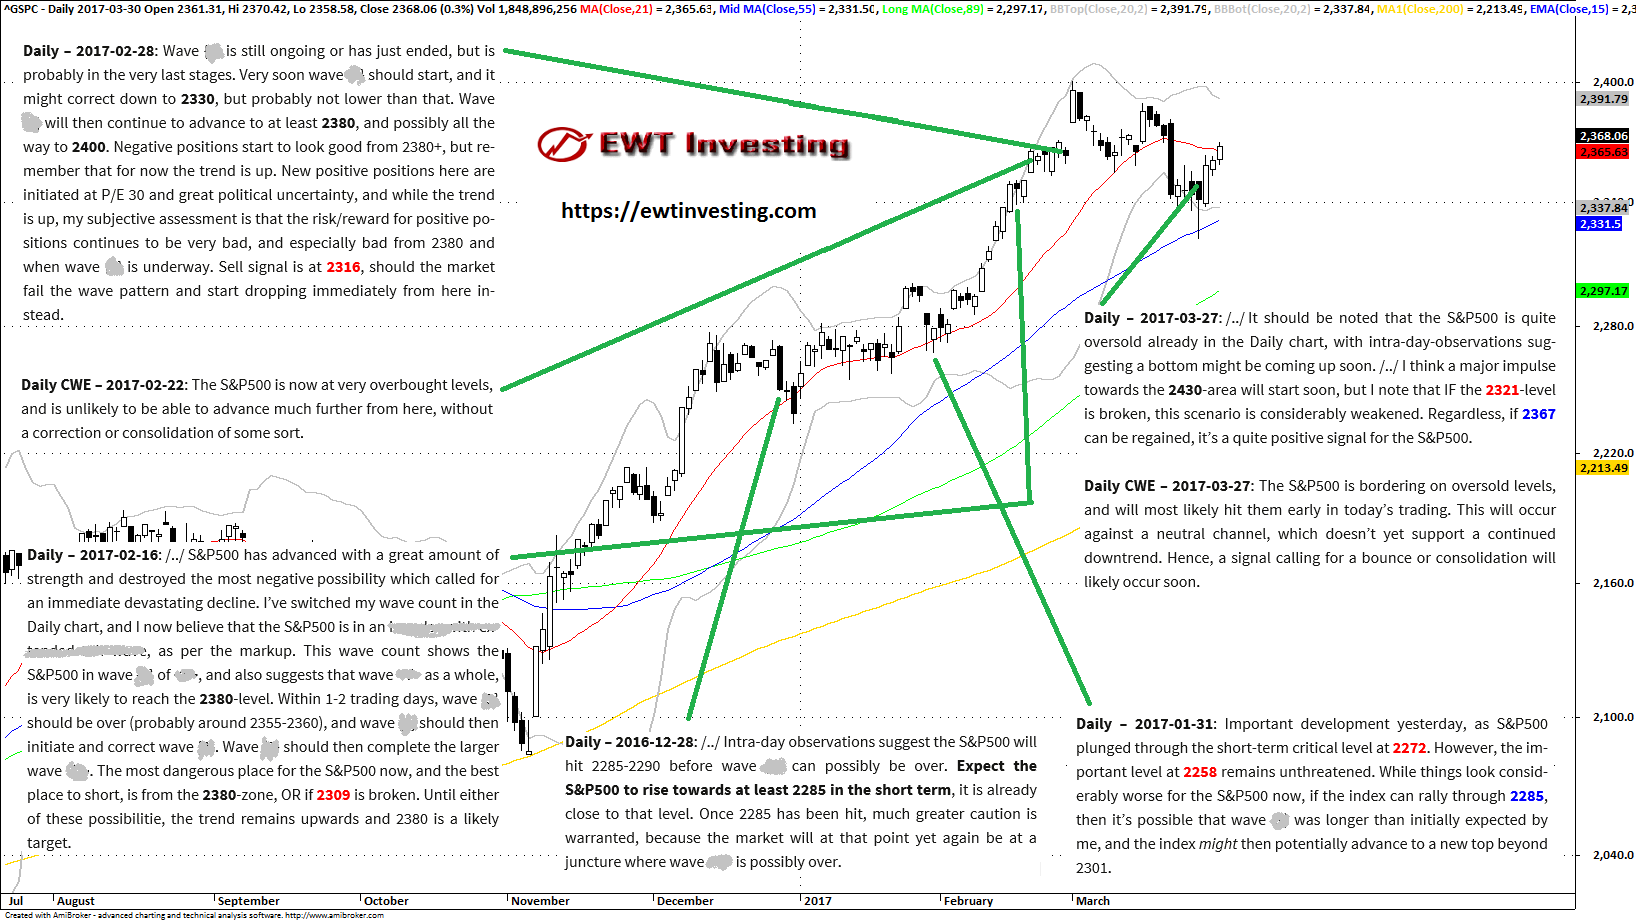 S&P500 Elliott Wave Theory Technical Analysis EWT Investing